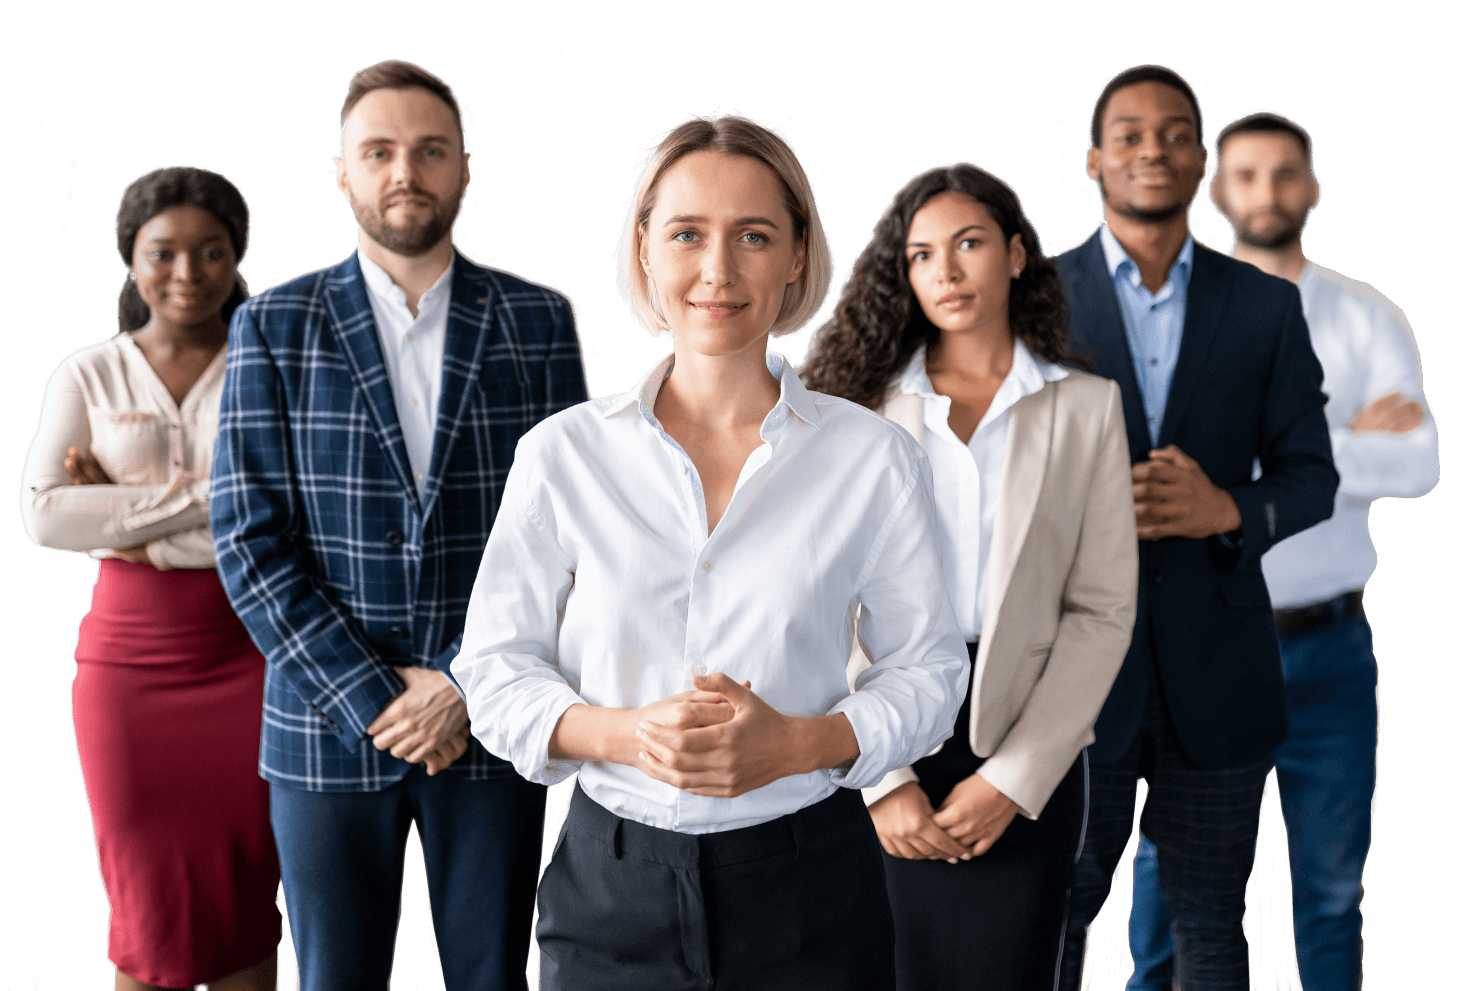 Group of business people standing and looking outward toward the viewer